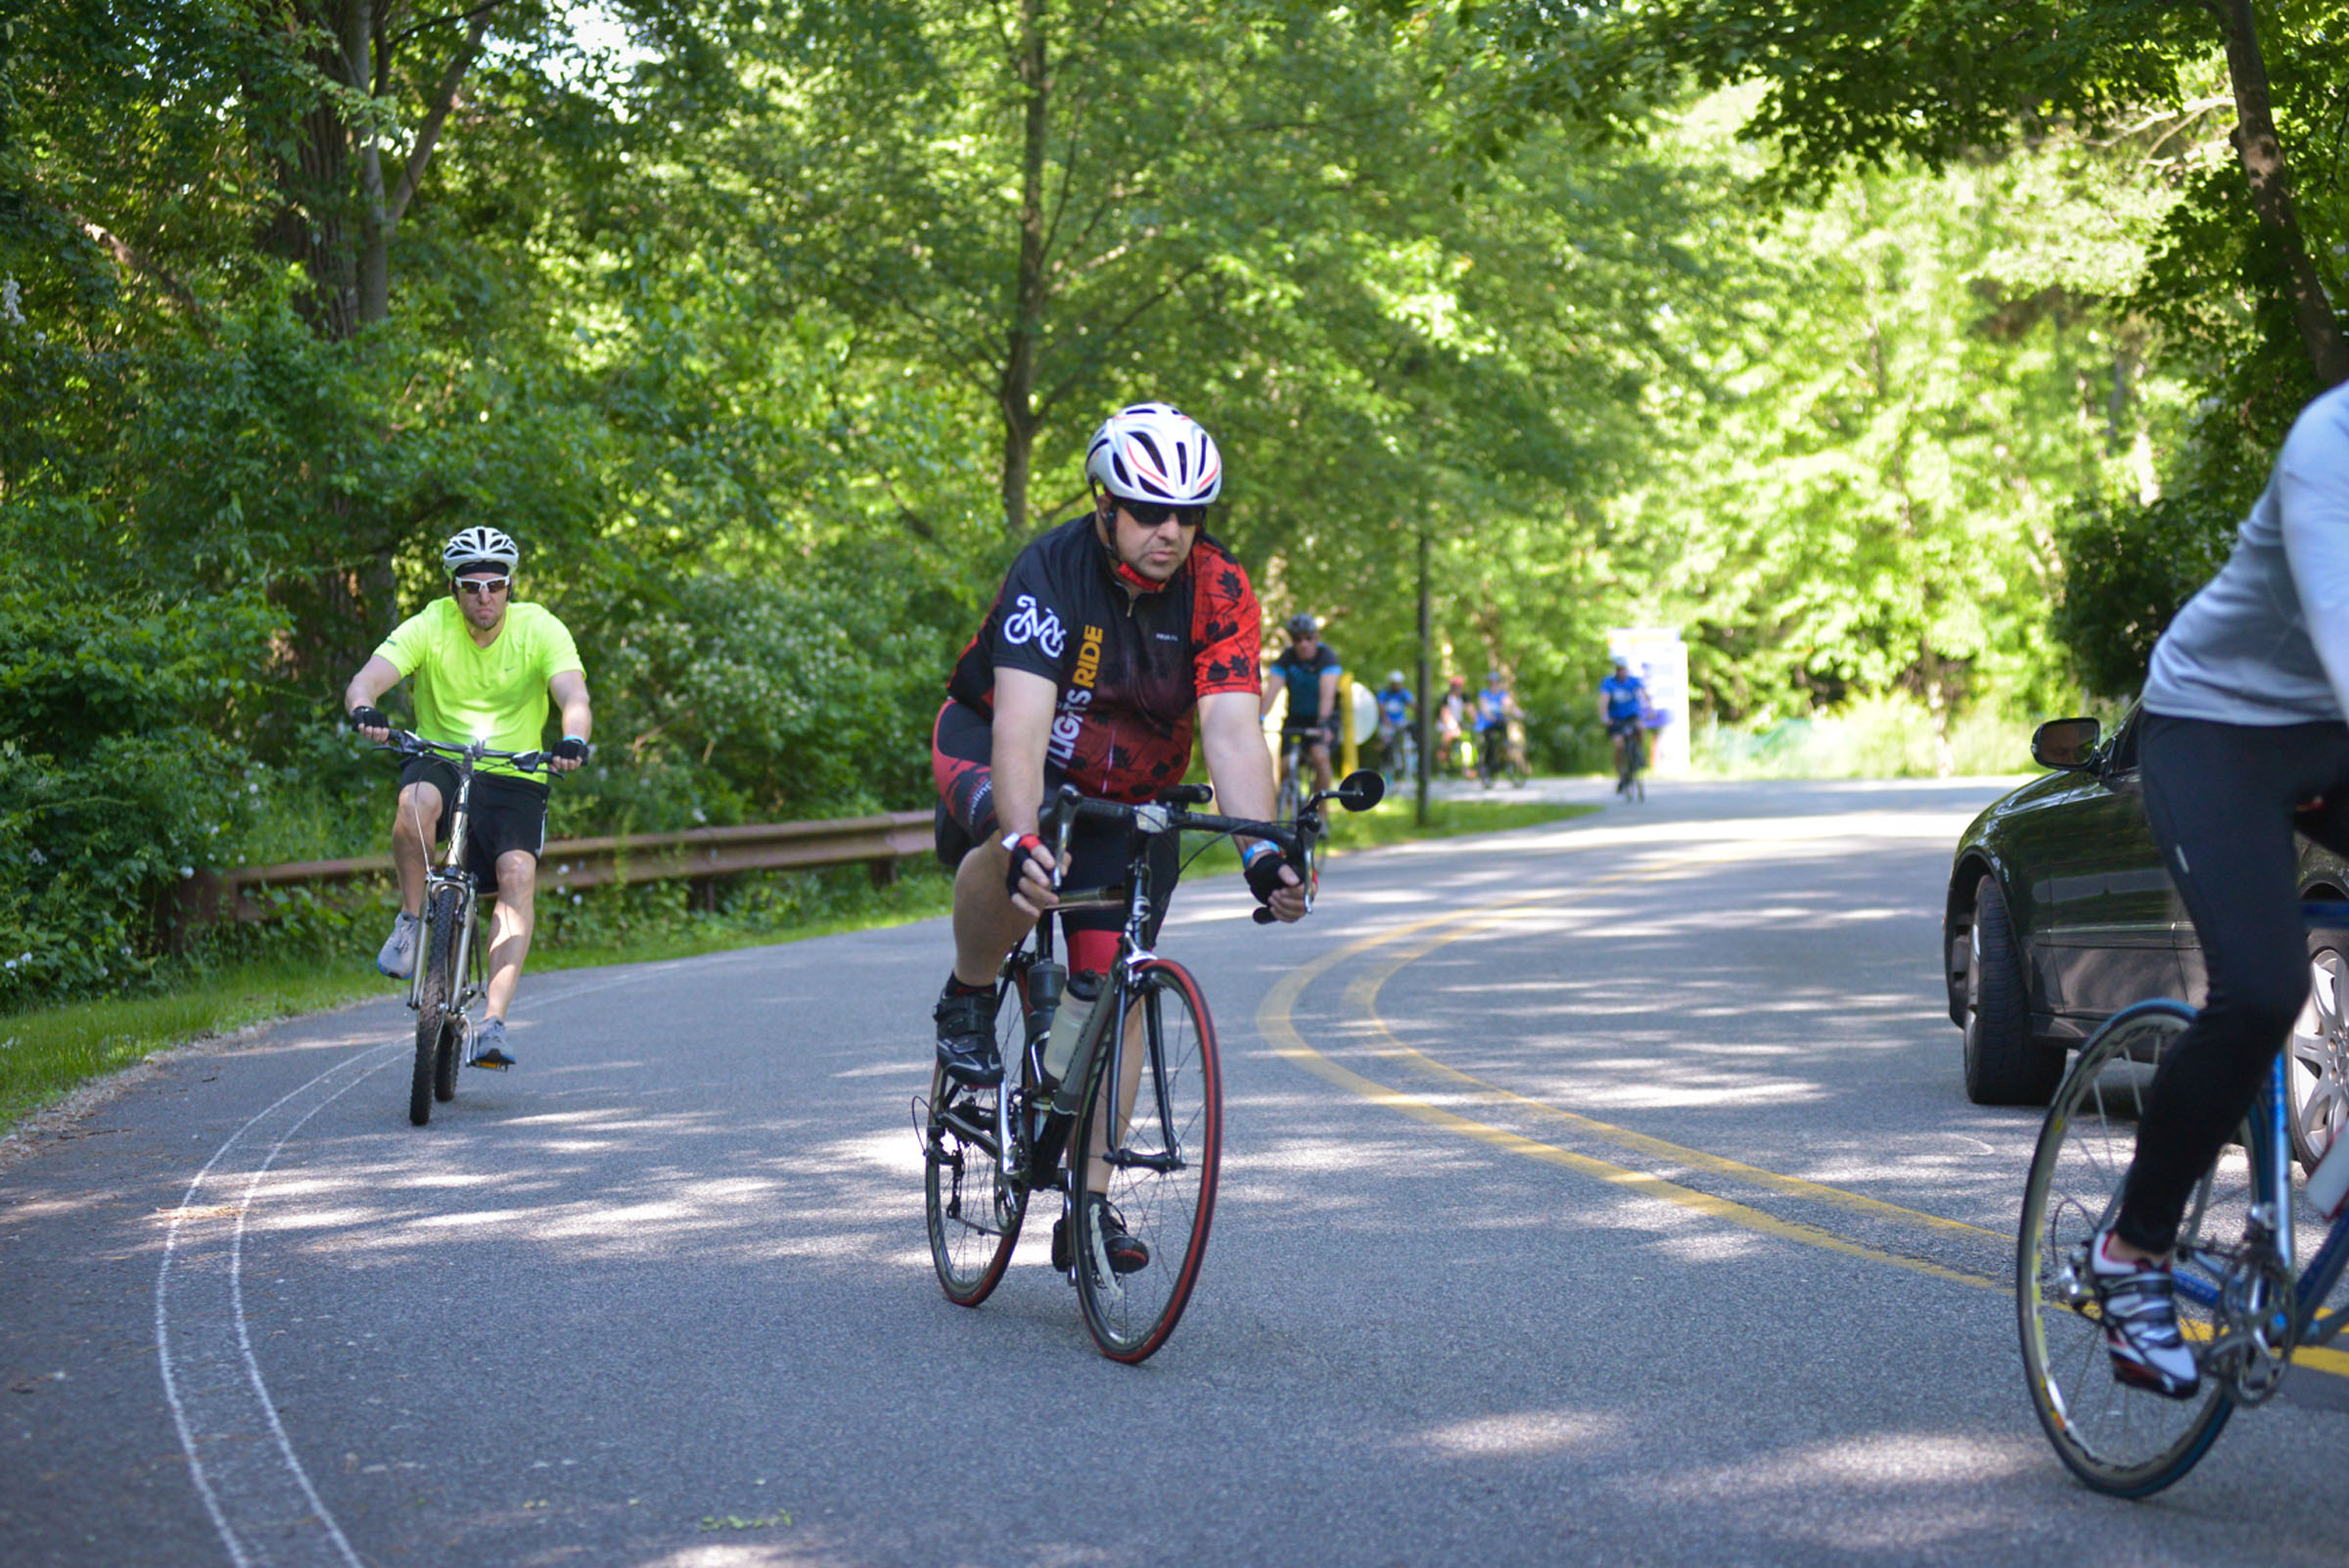 2017-06-04 GTD4A Charity Bike Ride - BCC - Paramus NJ-1864.jpg